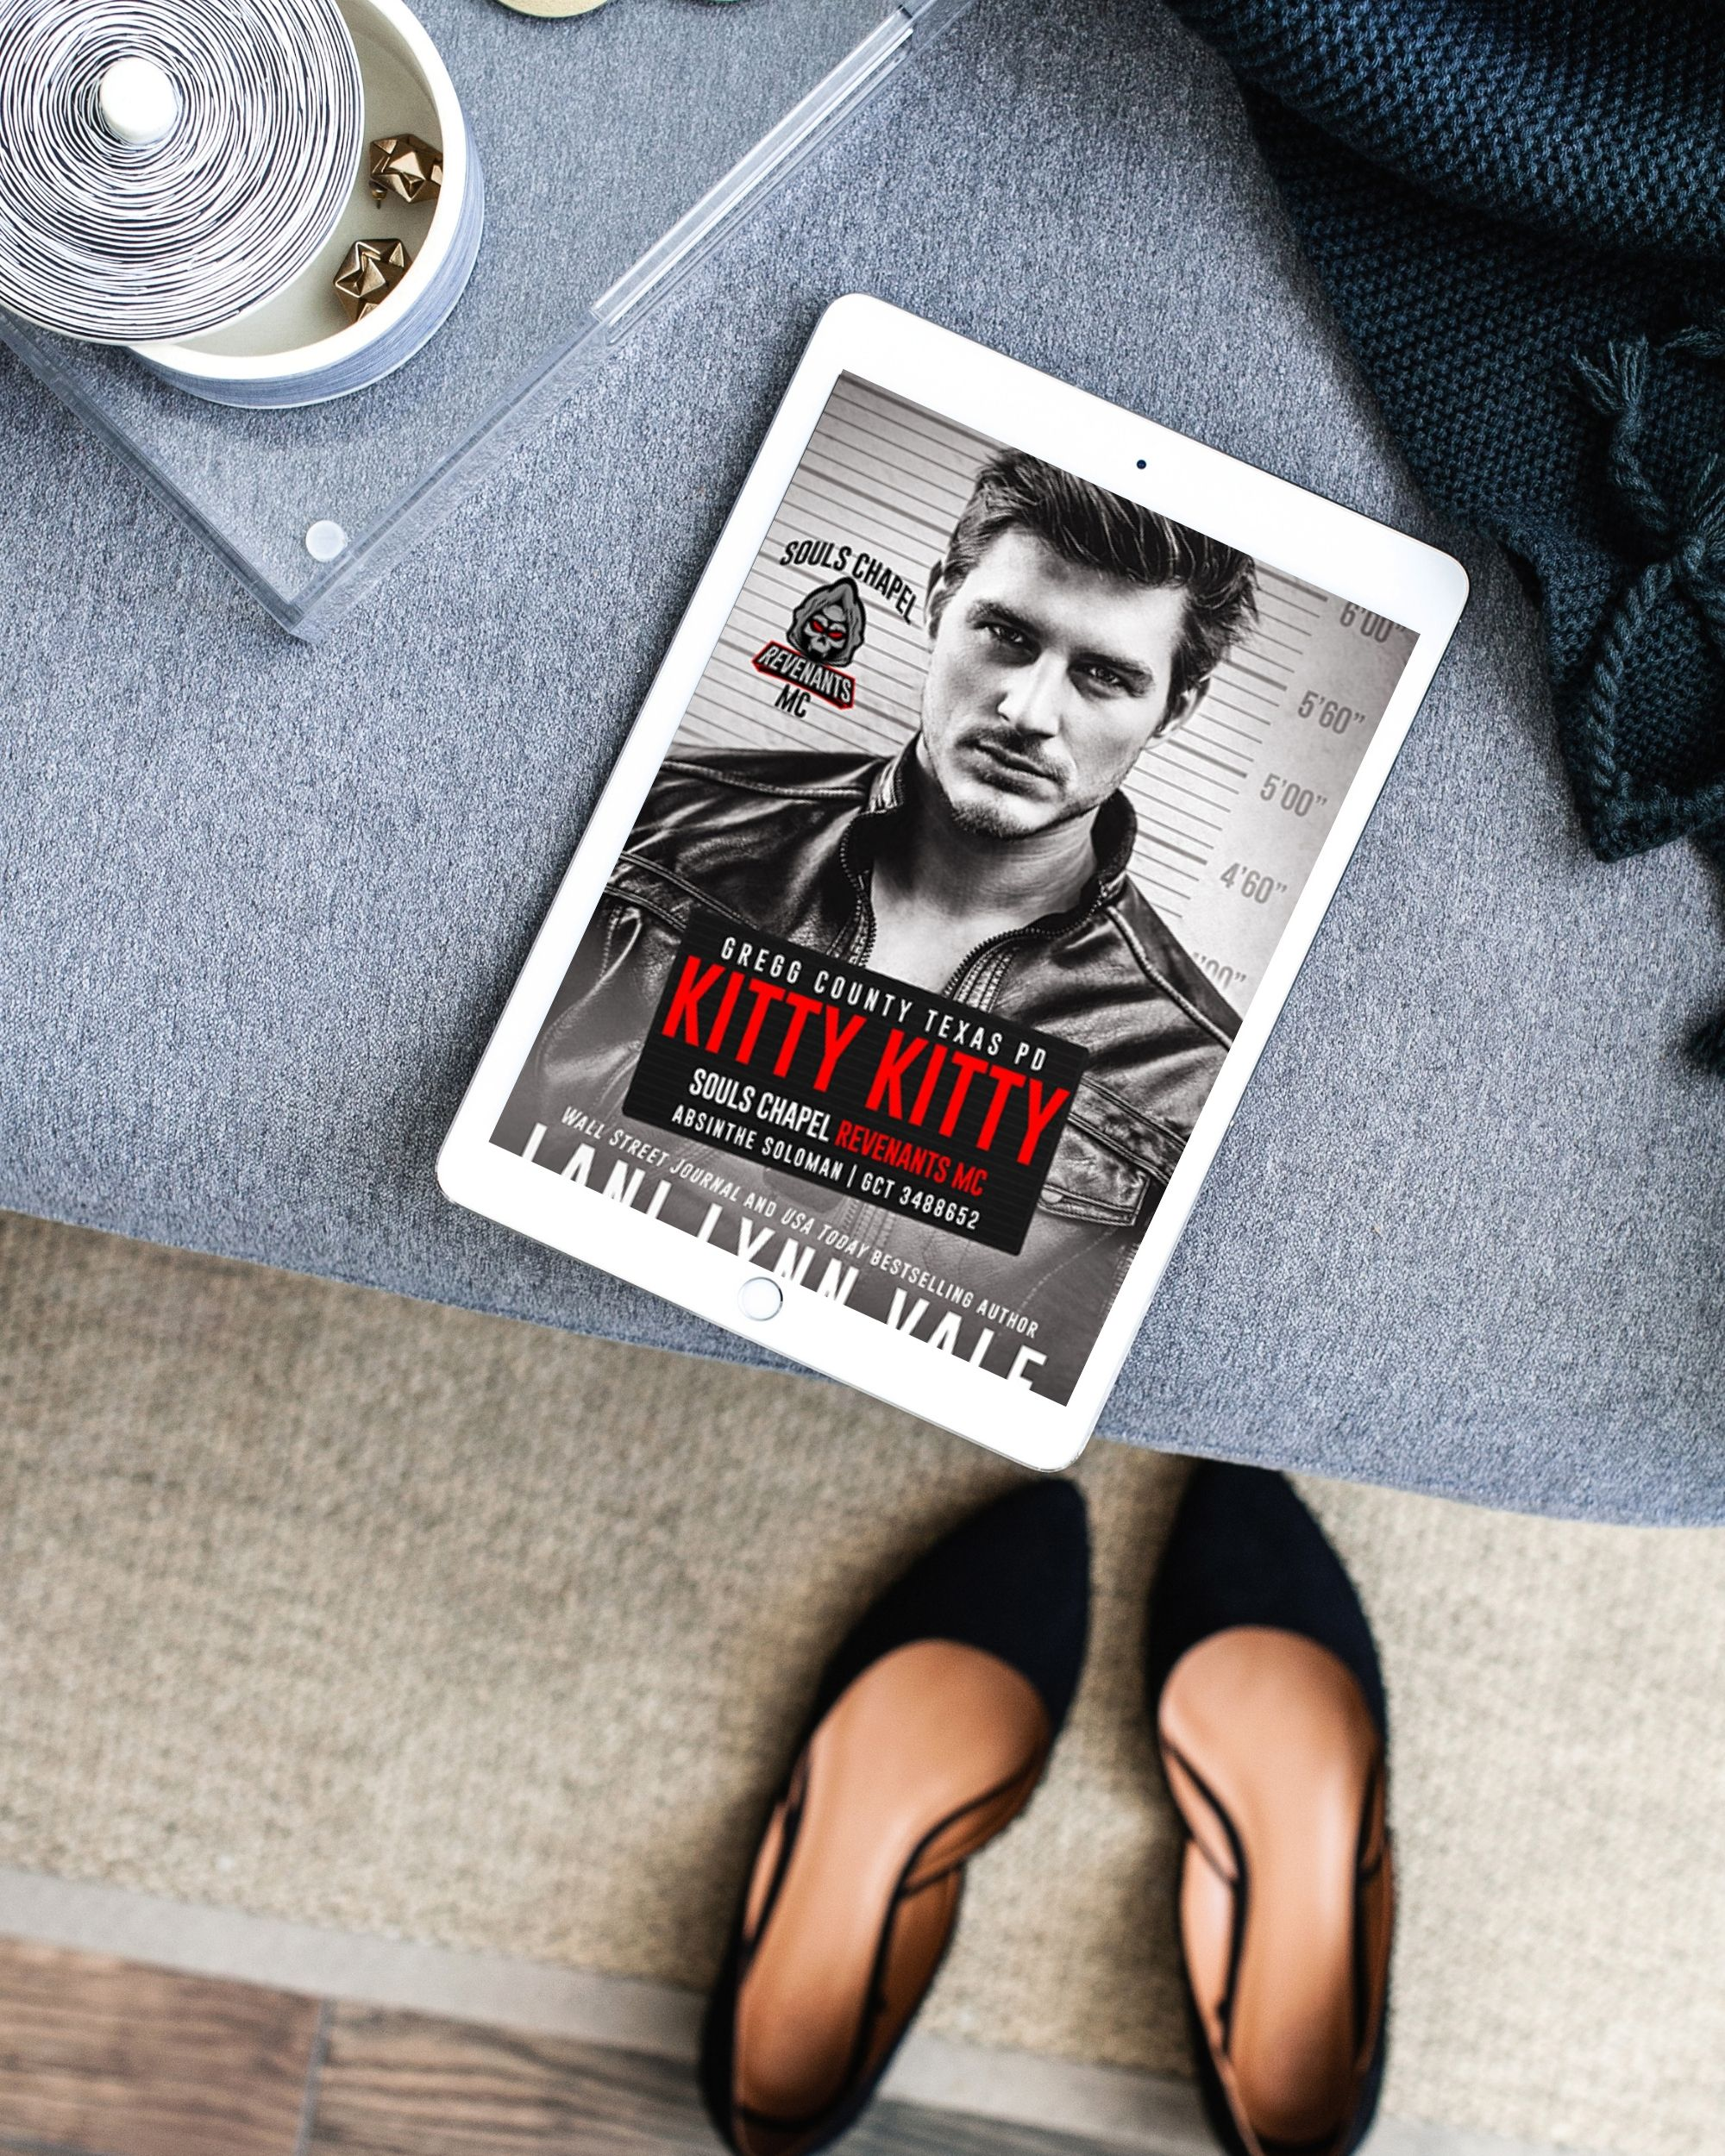 Kitty Kitty Book Review at Wickedly Romance